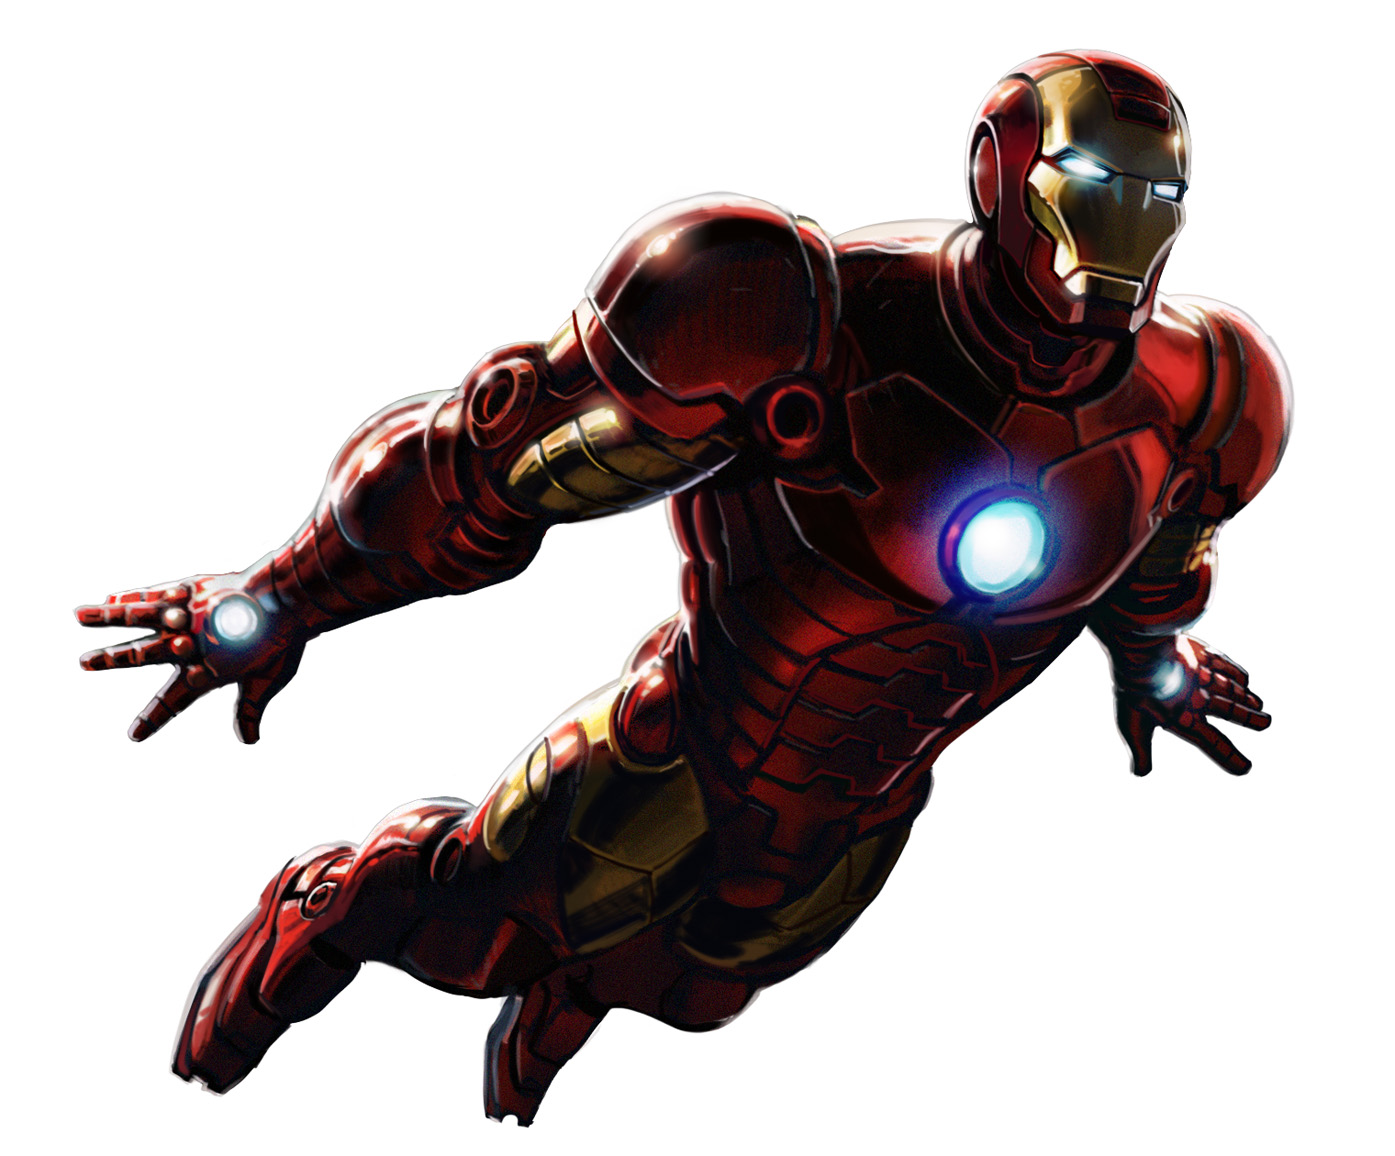 Marvel superheroes and villains  including  Spider-Man    Iron ManIron Man Marvel Avengers